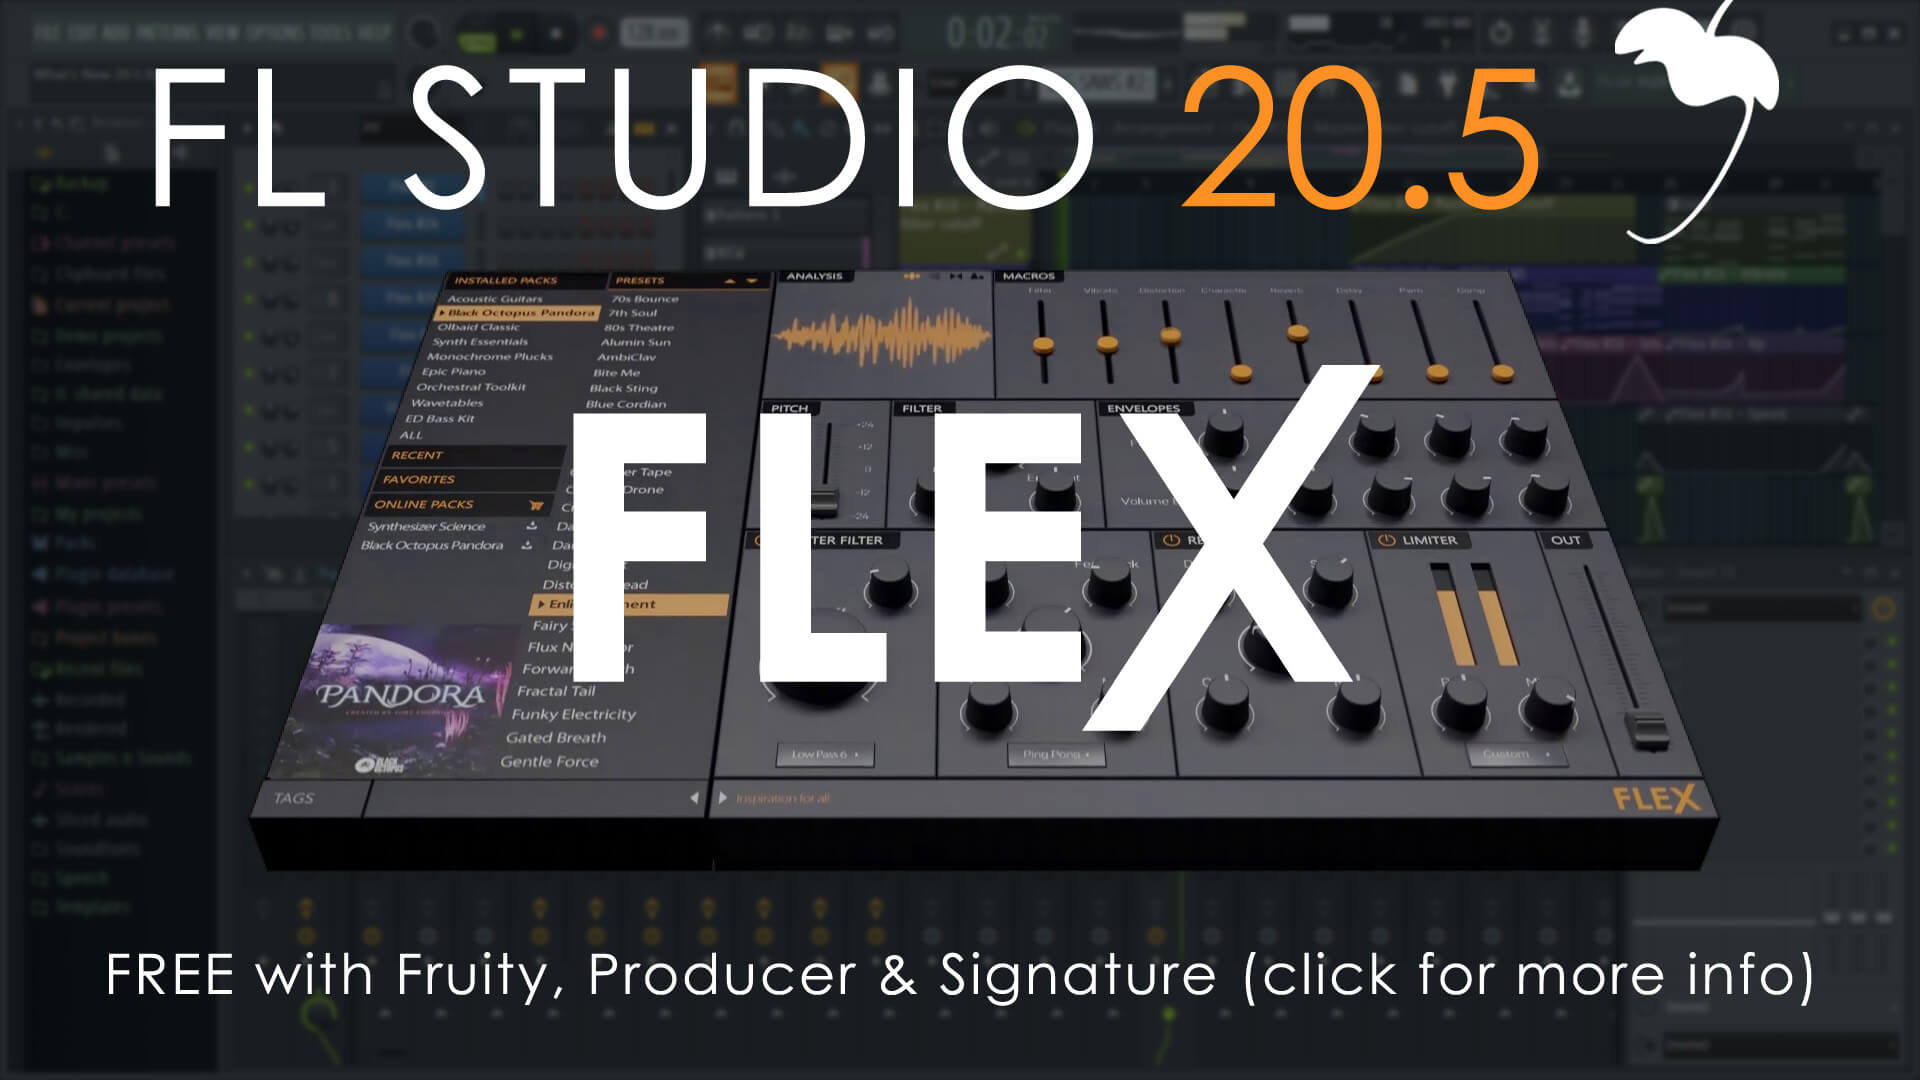 FL STUDIO 20.5 Released